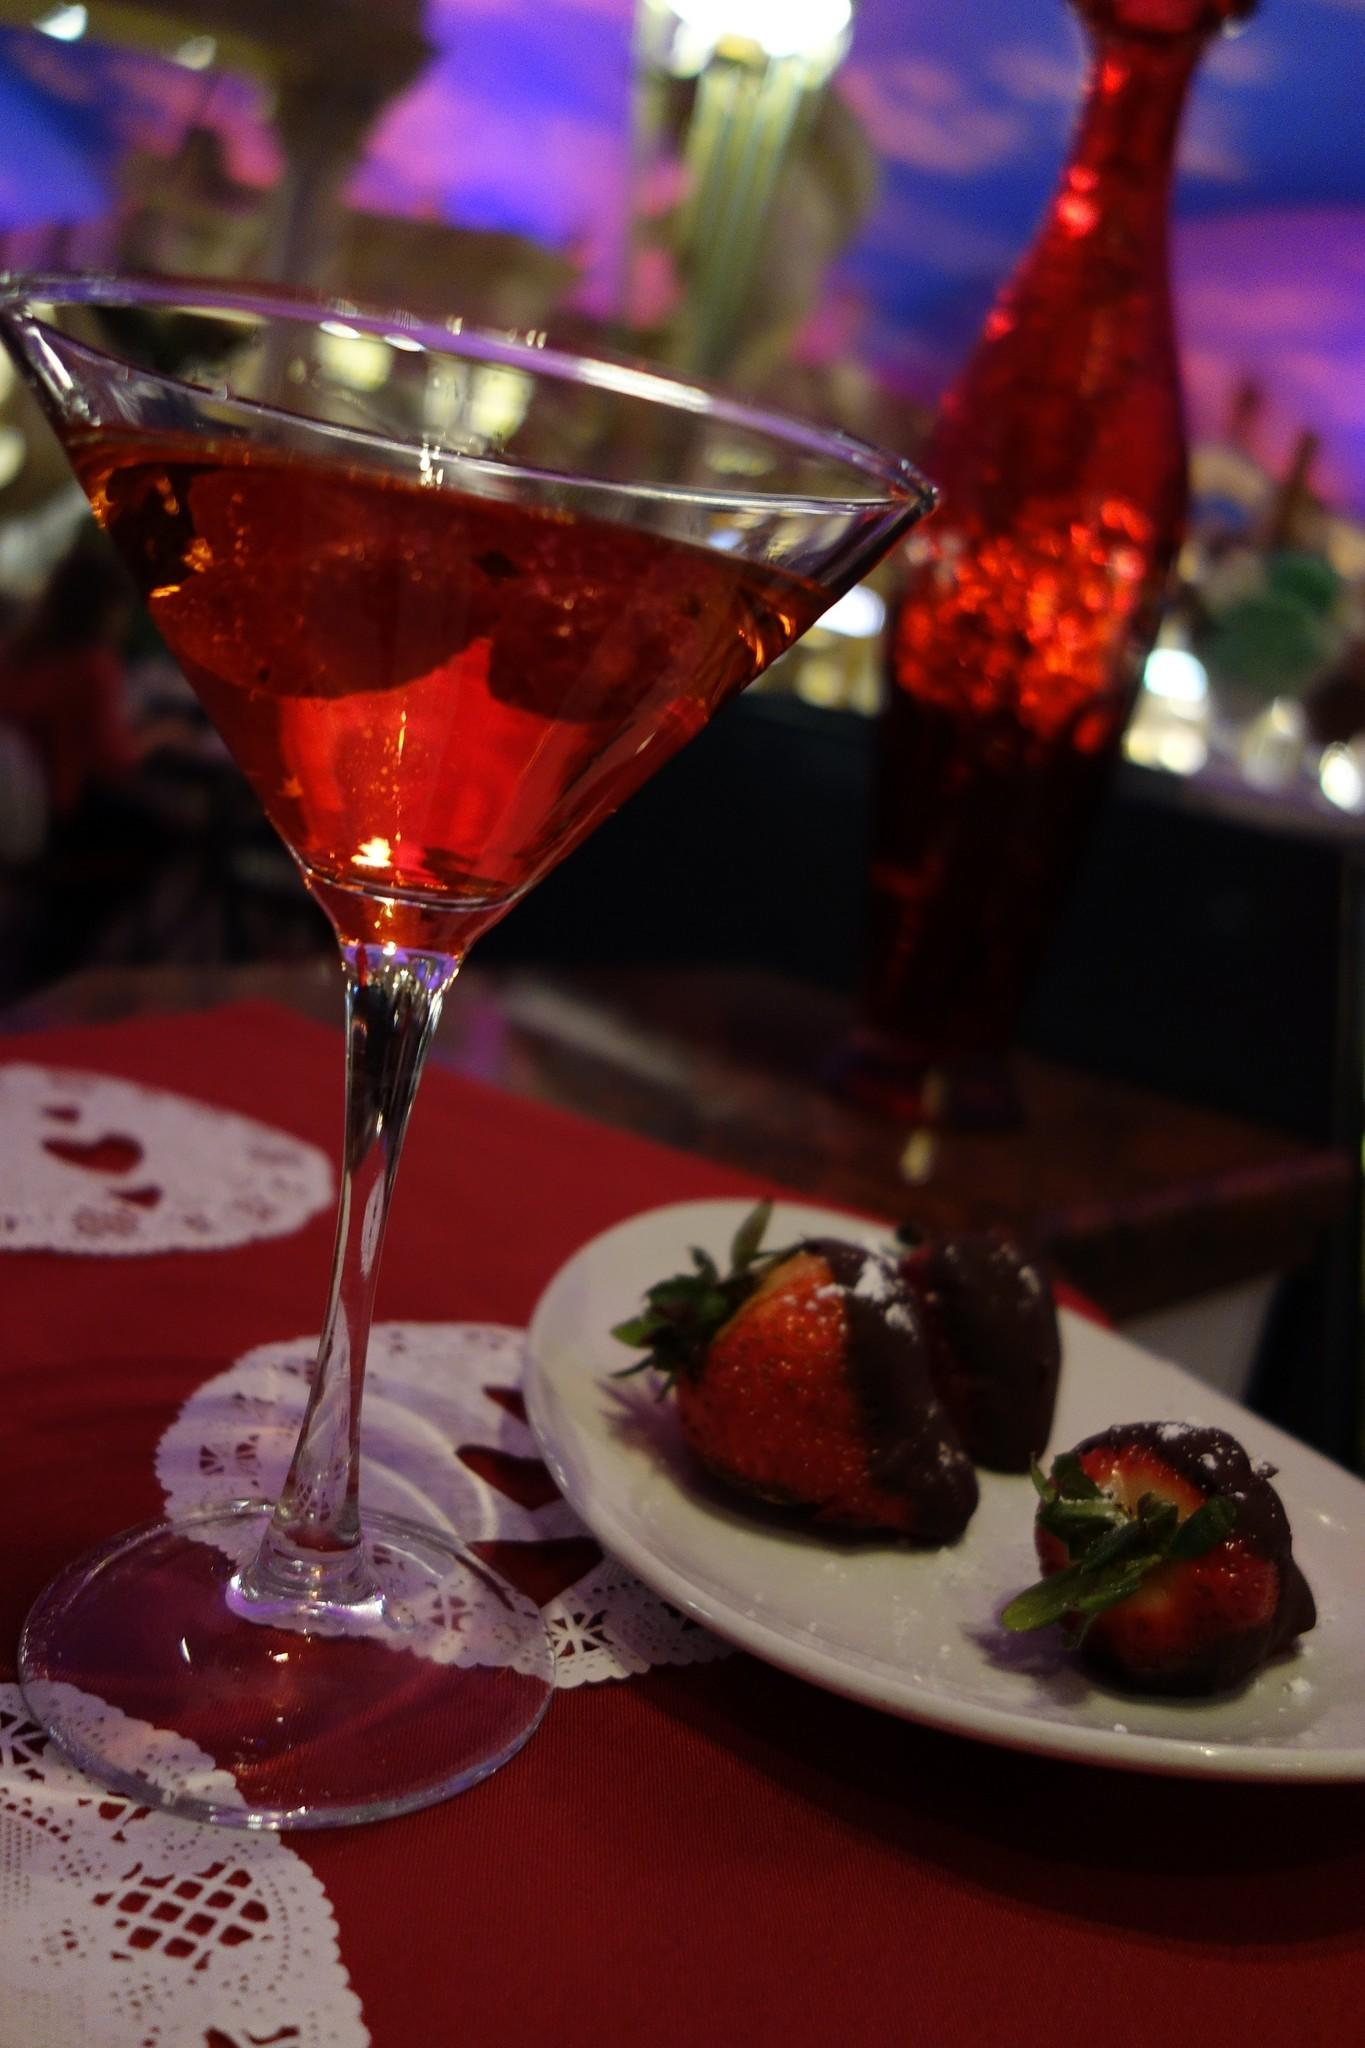 valentines day speed dating las vegas Earnhardt mazda las vegas is a  romantic date ideas and things to do for valentine's day in las vegas » 2018 valentine's day events and activities.